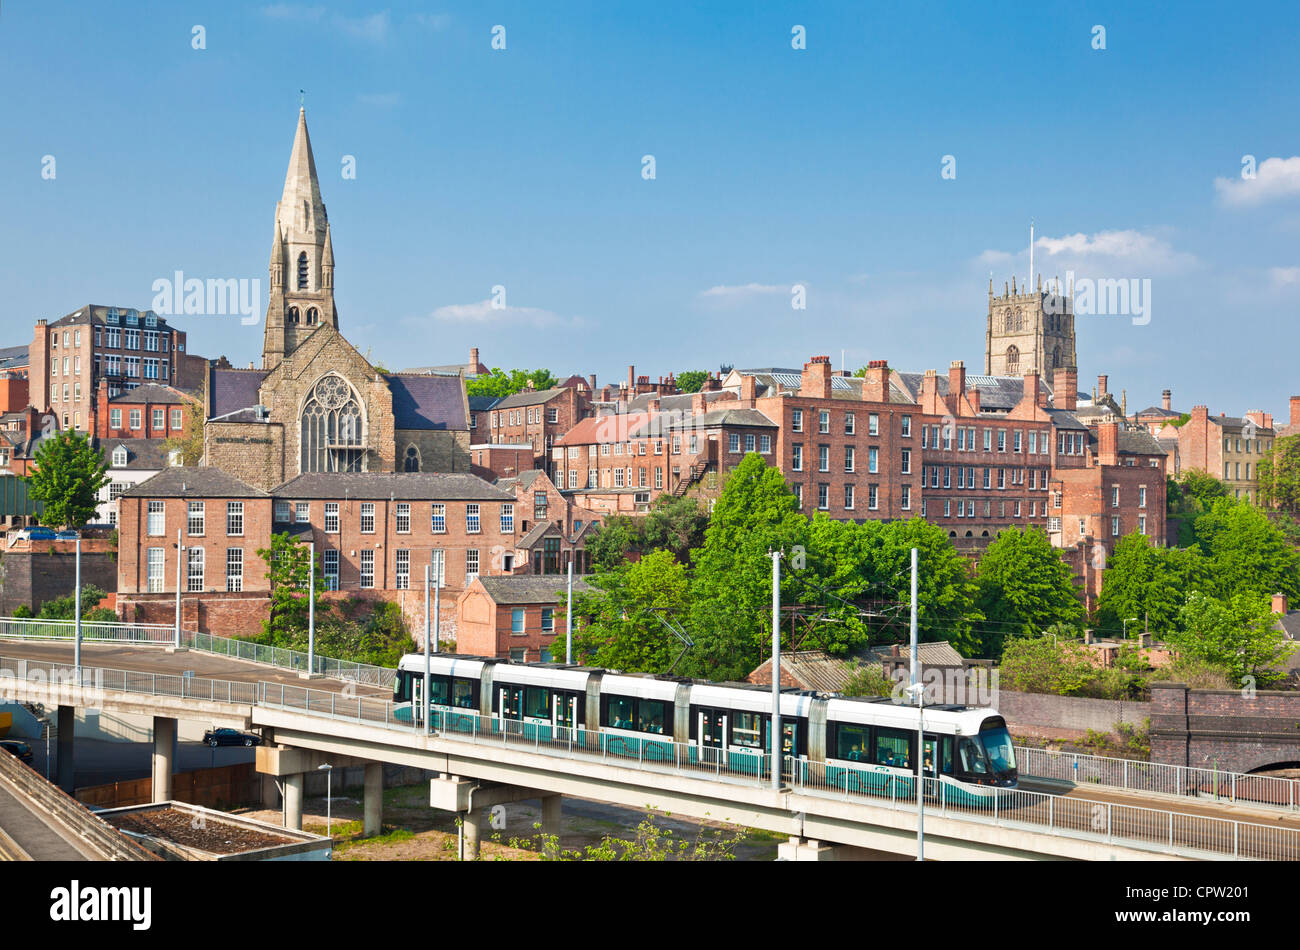 Nottingham tram crossing a bridge travelling from Nottingham city centre Nottinghamshire England UK GB EU europe - Stock Image